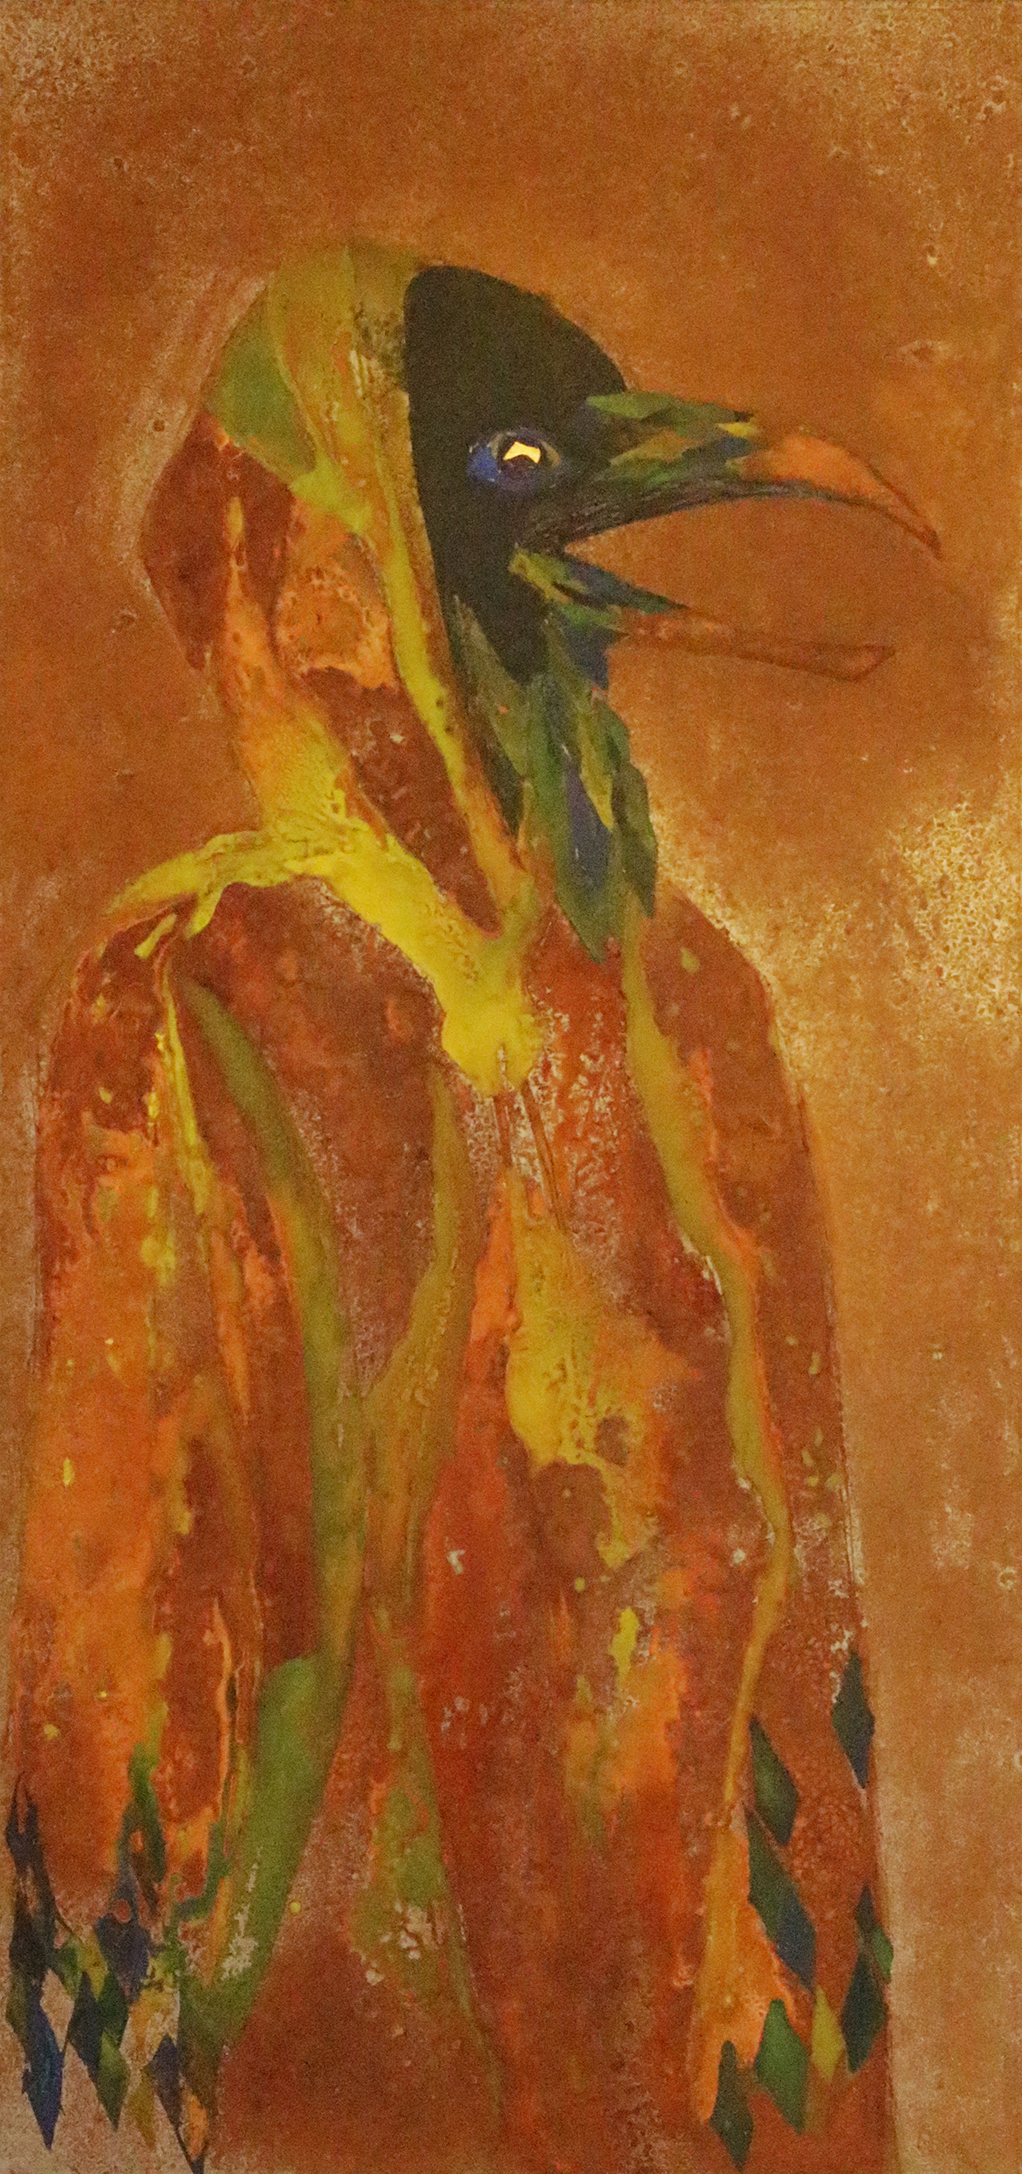 media/com_crc/members/1662/images/Homme Oiseau 100x200cm.jpg